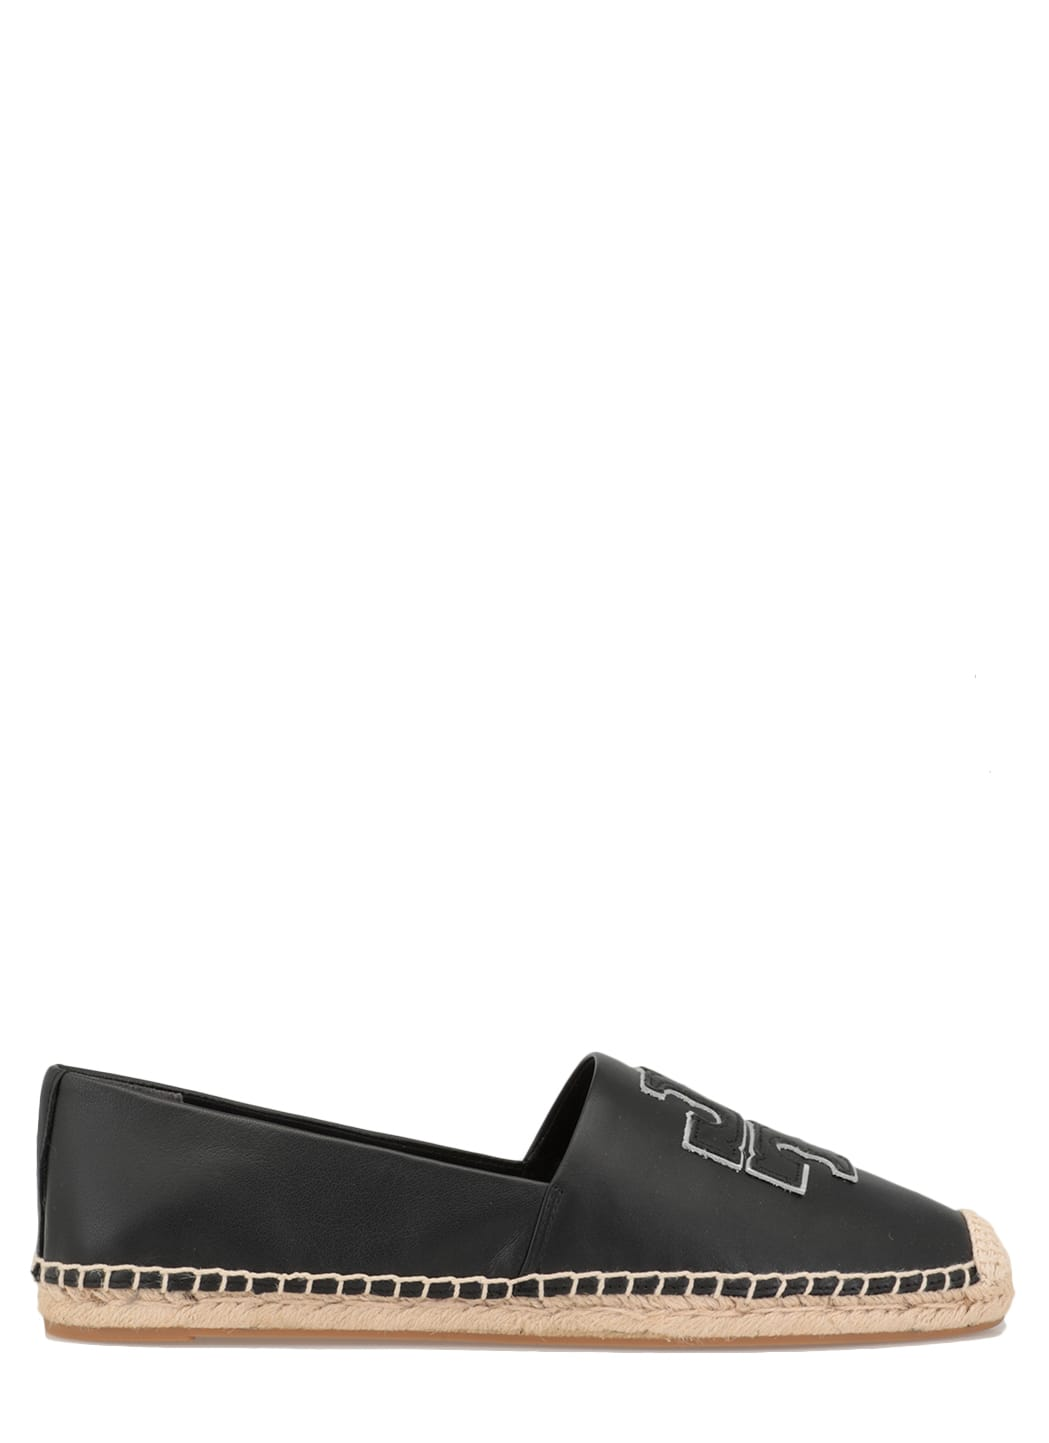 Buy Tory Burch Ines Espadrille online, shop Tory Burch shoes with free shipping